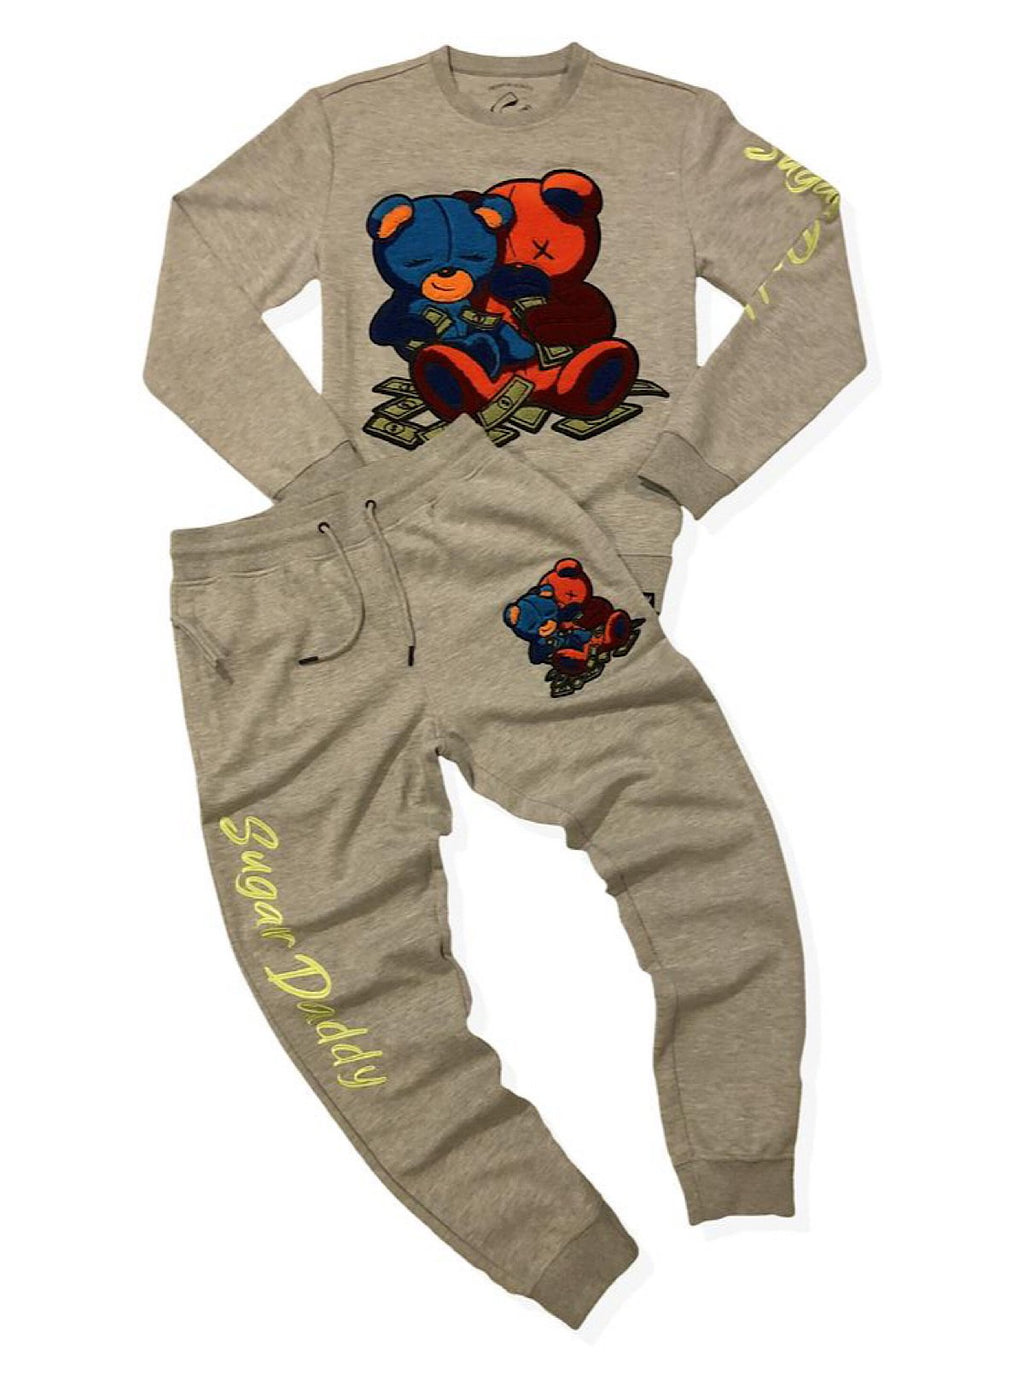 Civilized Sweatsuit - Double Sugar Daddy - Grey